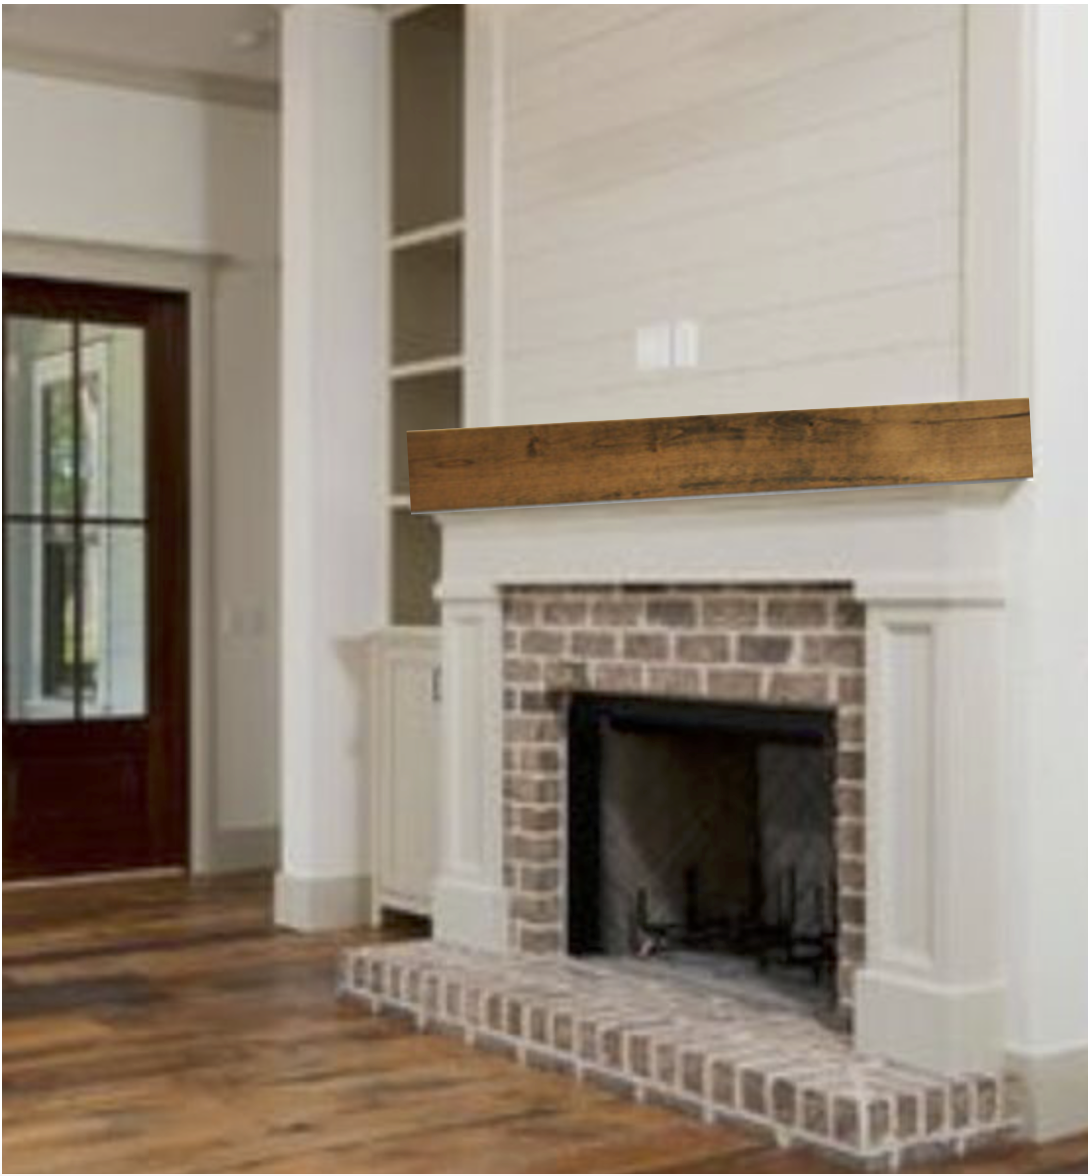 Final Choice For Mantle Home Fireplace Red Brick Fireplaces